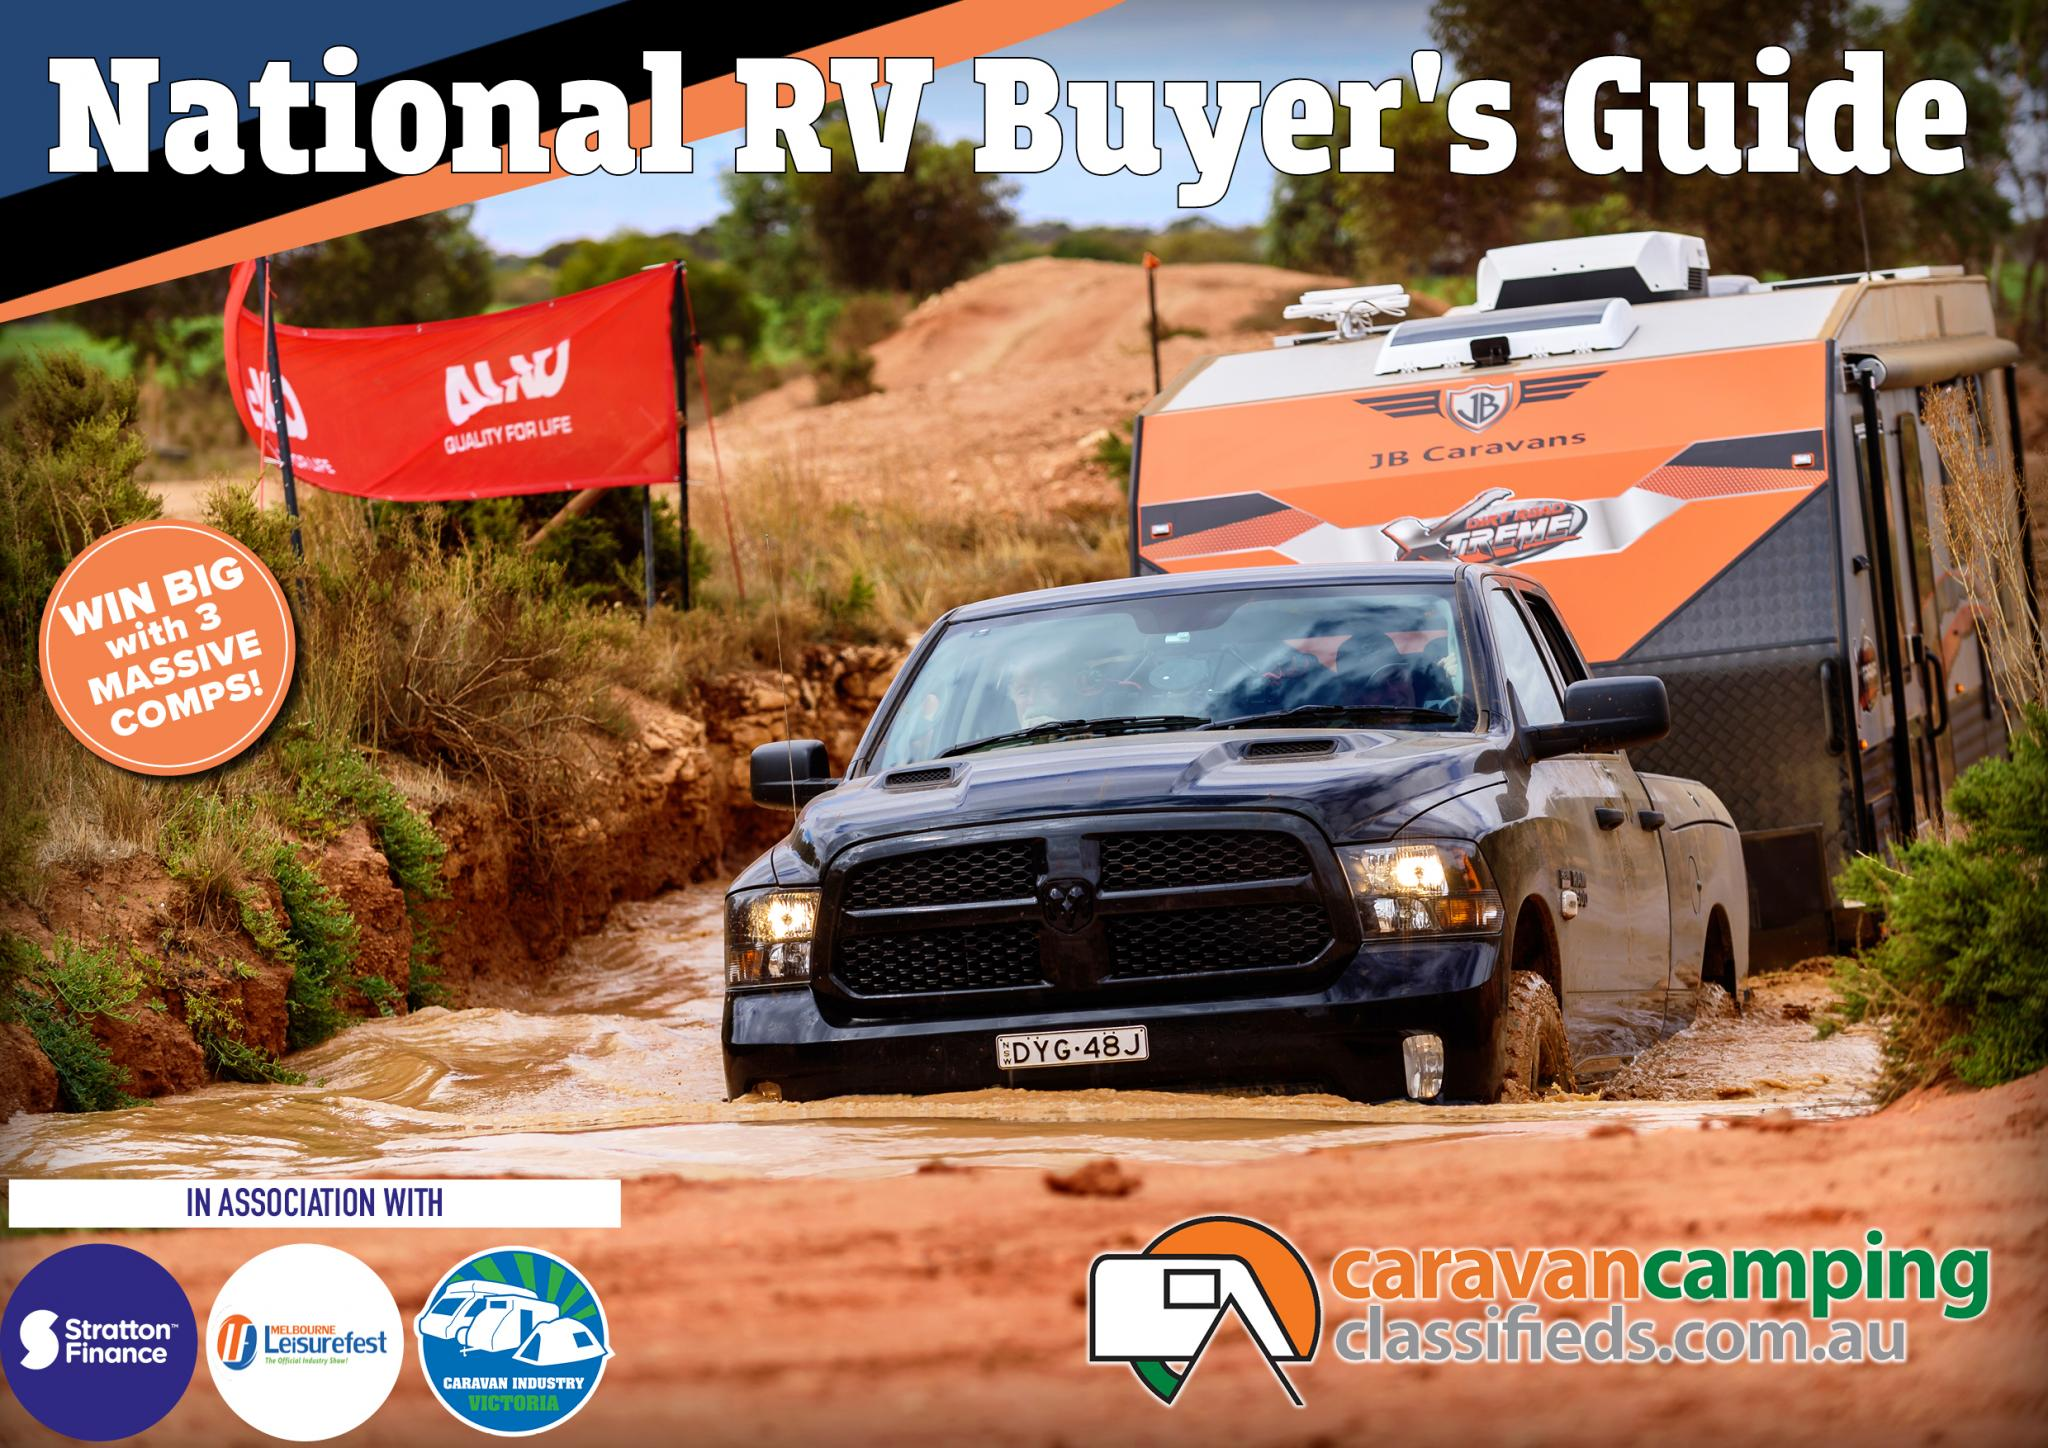 Rv national buyer's guide – october